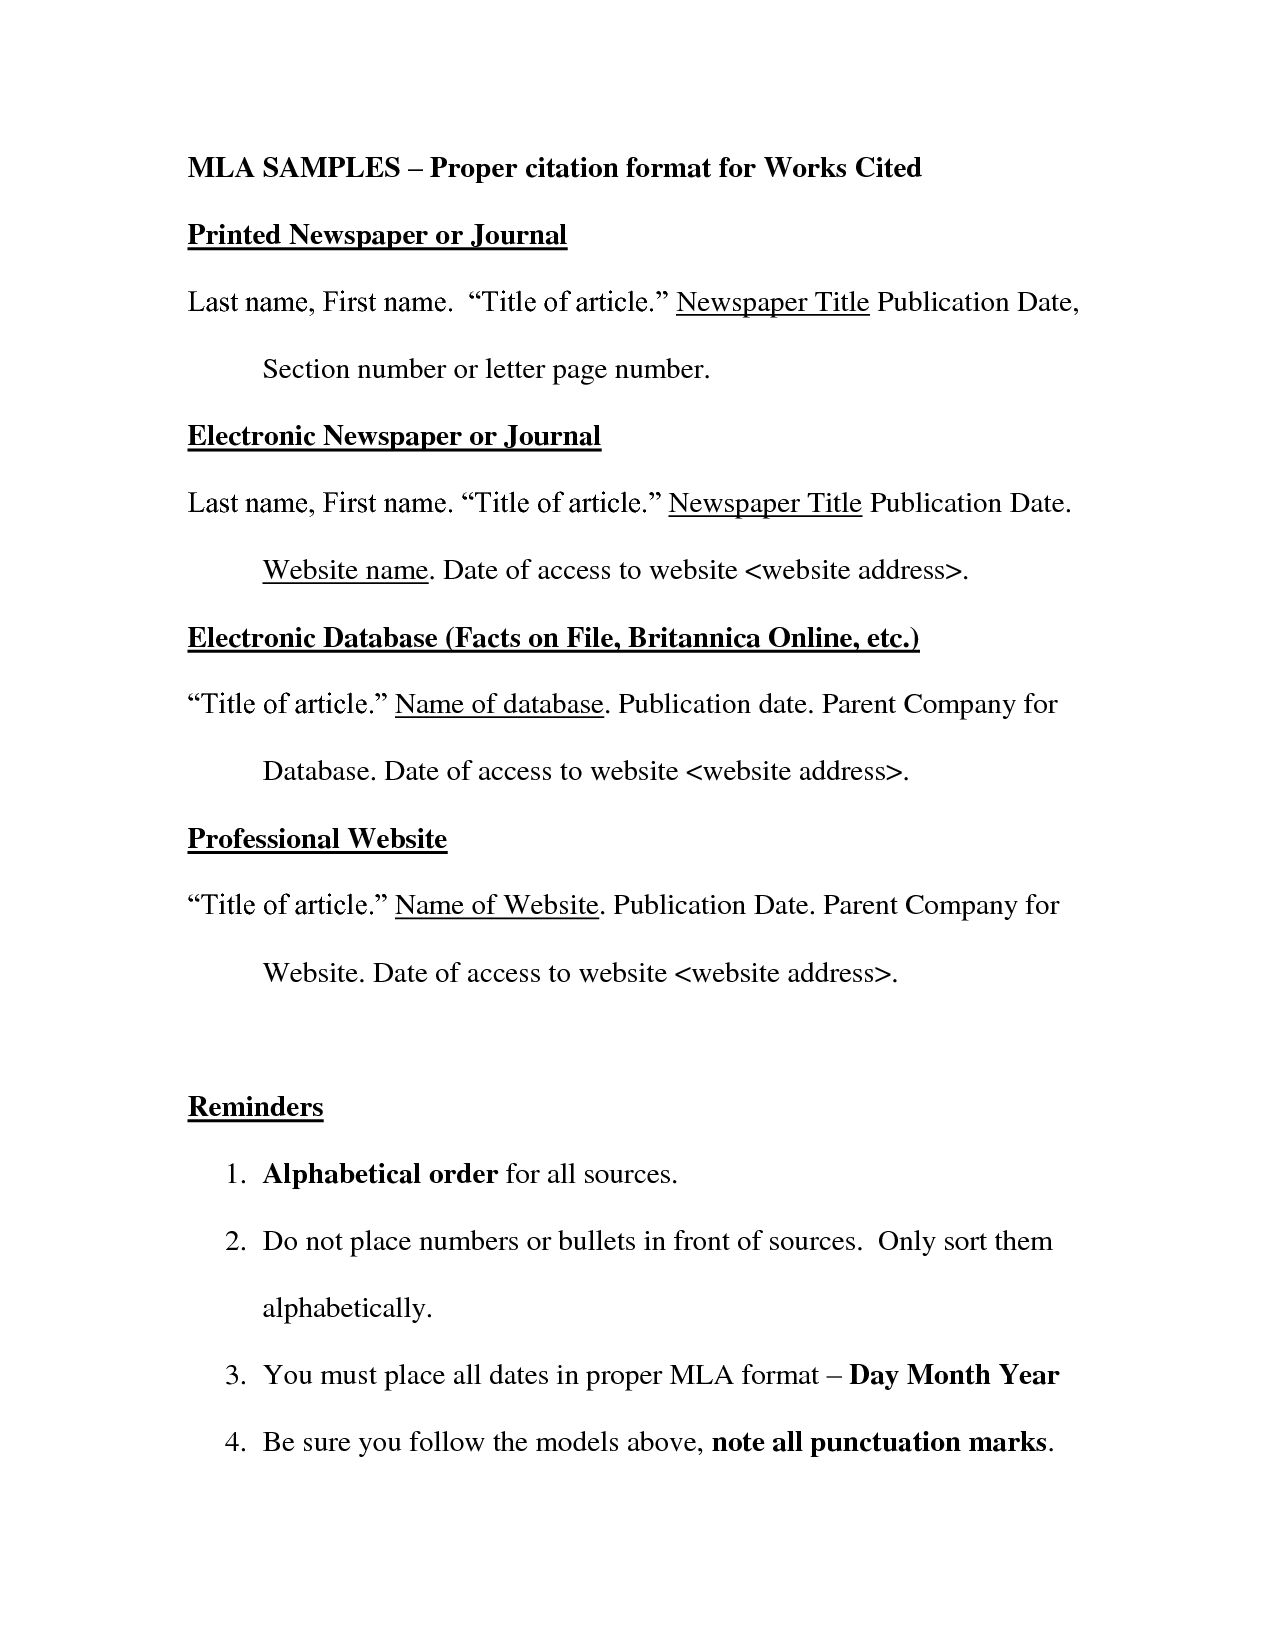 013 Mla Format Works Cited Page Websites 82966 How To Do For Research Unusual Paper A Full